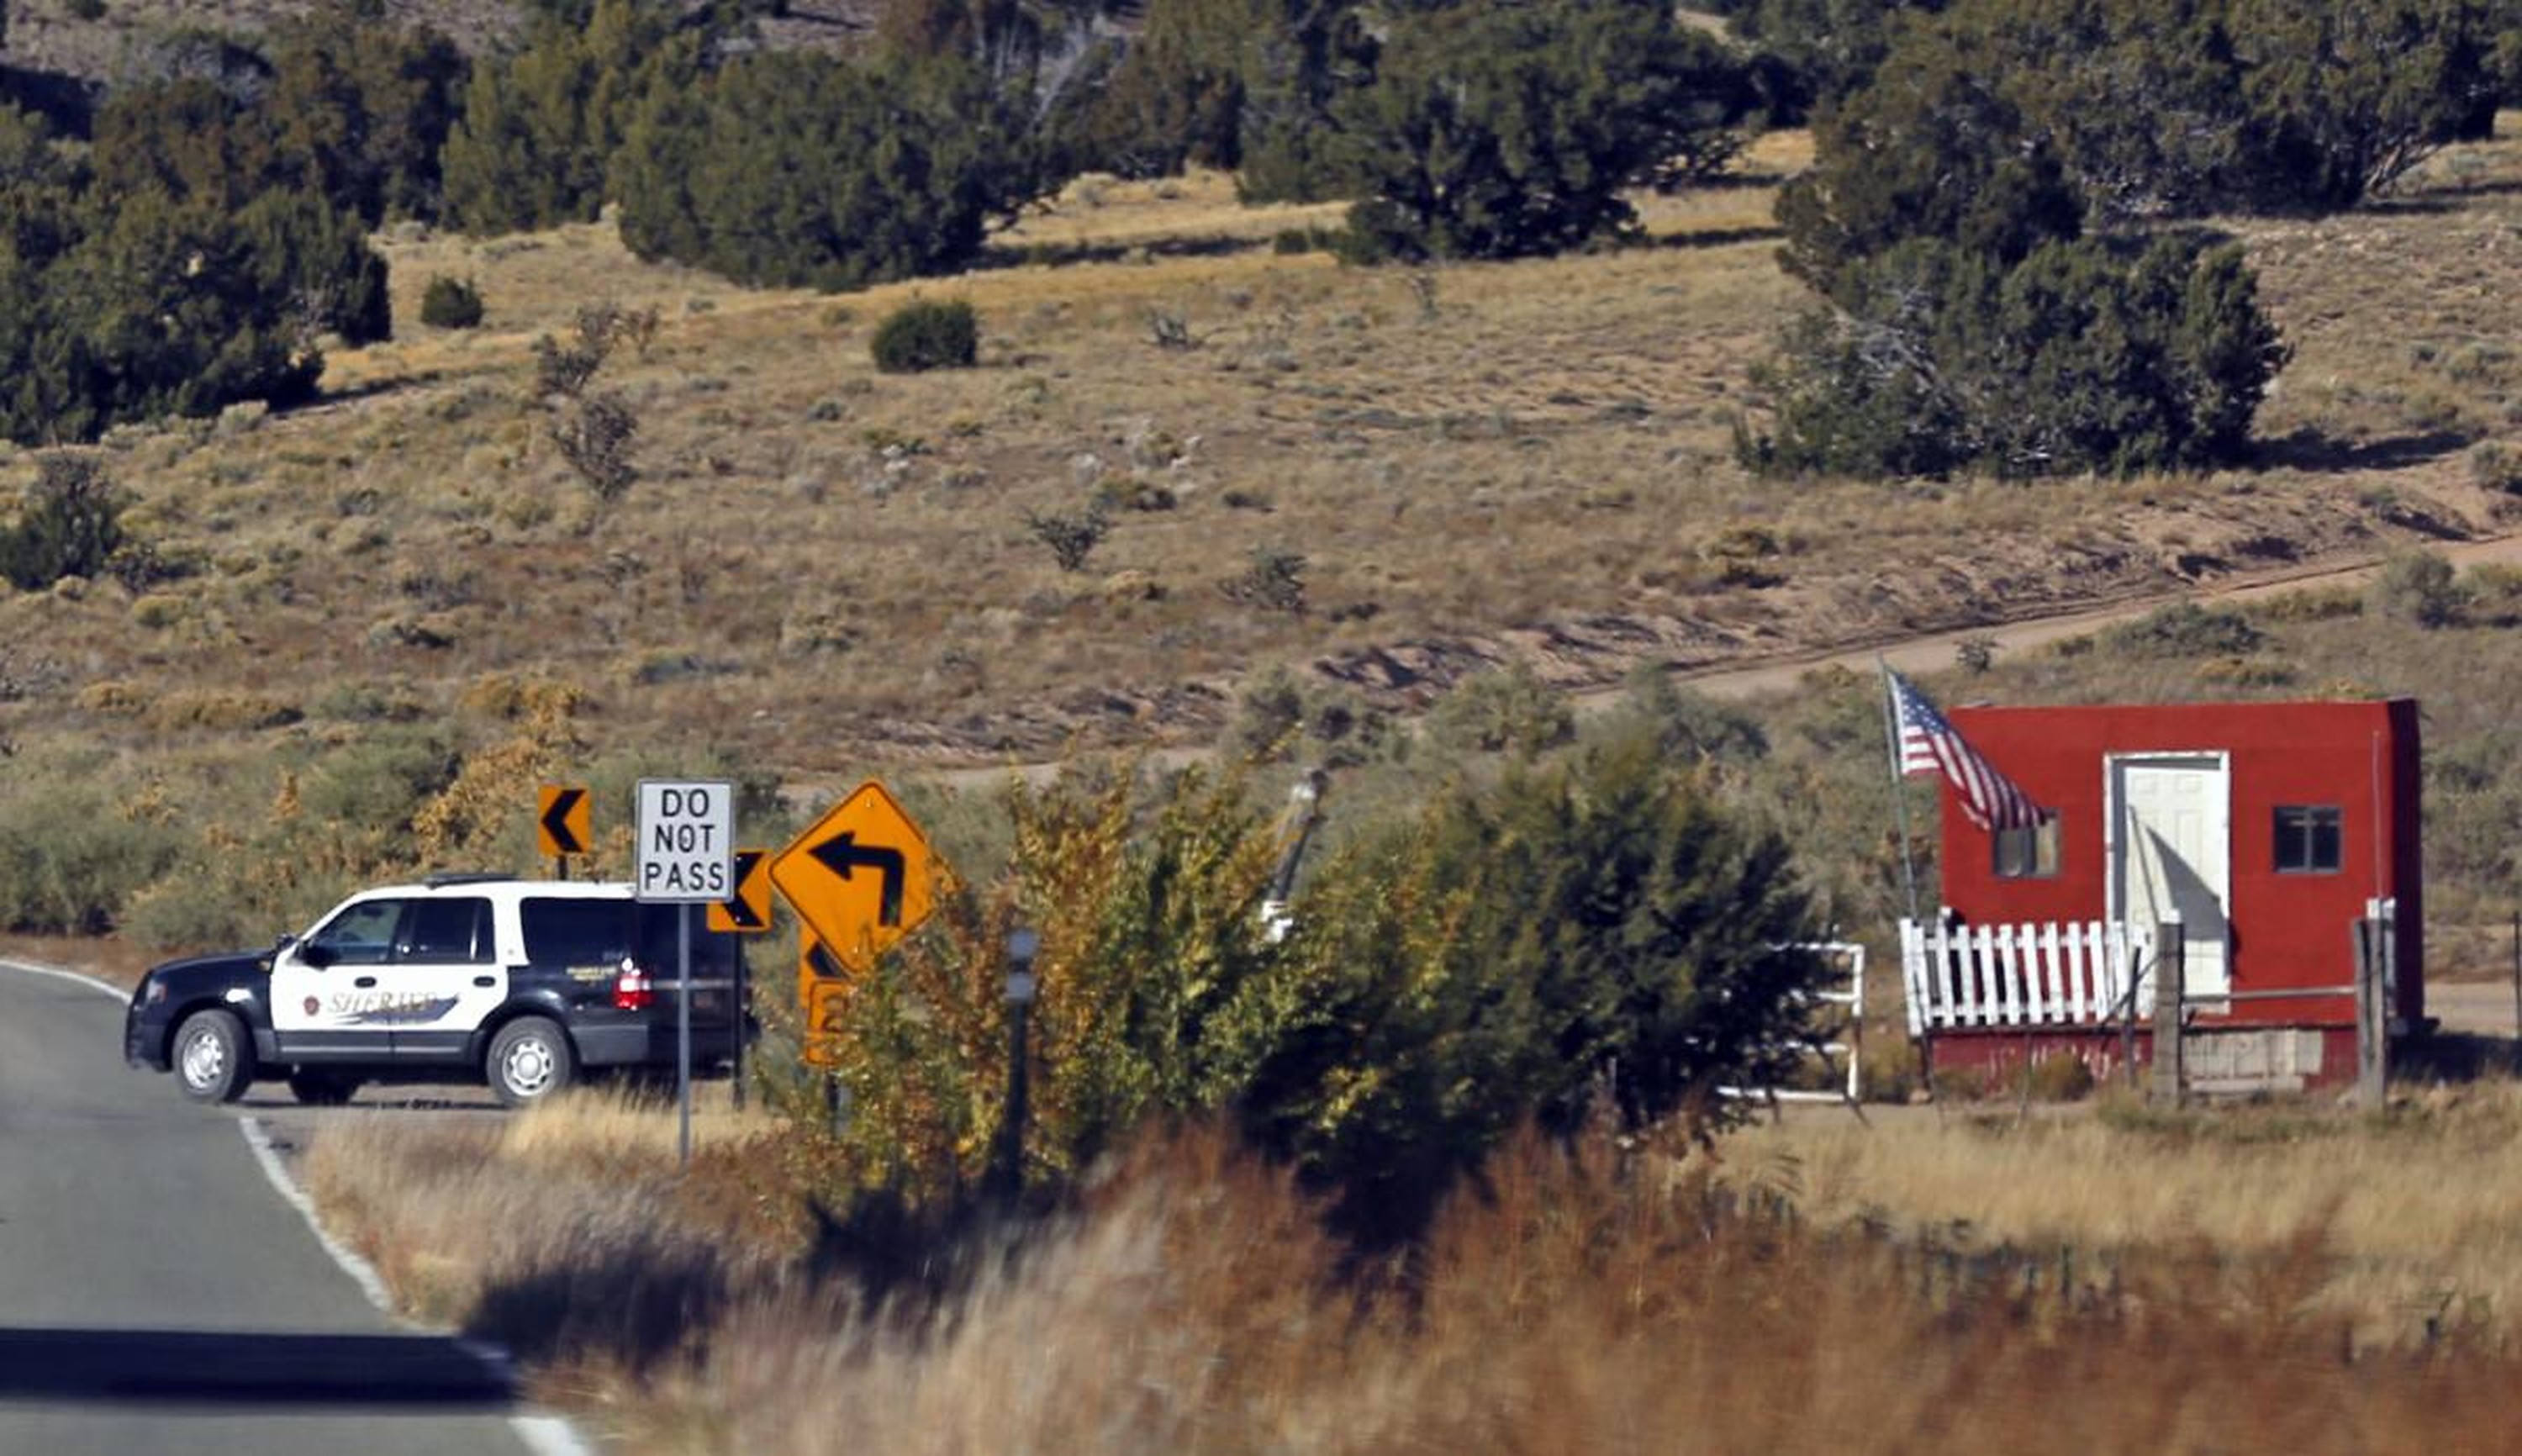 Santa Fe County Sheriff's officers respond to the scene of a fatal accidental shooting at a Bonanza Creek Ranch movie set.